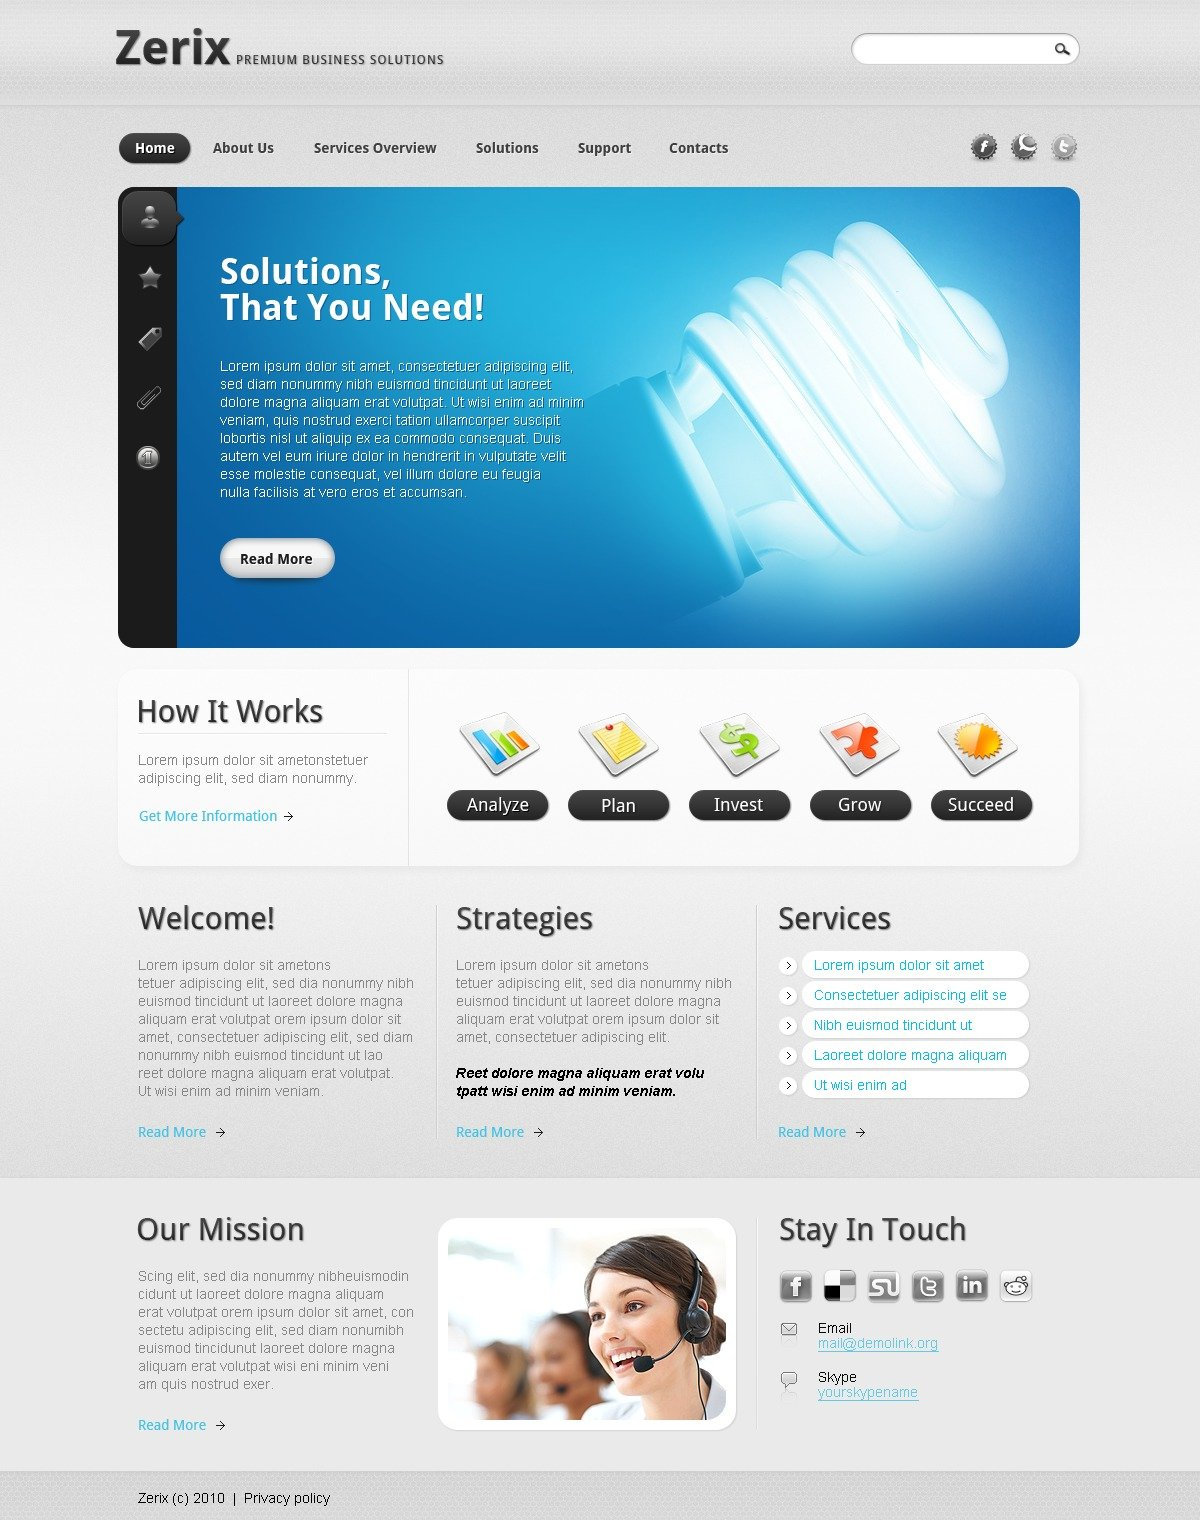 The Zerix Business Company PSD Design 54178, one of the best PSD templates of its kind (business, flash 8, wide), also known as zerix business company PSD template, corporate solutions PSD template, innovations PSD template, contacts PSD template, service PSD template, support PSD template, information dealer PSD template, stocks PSD template, team PSD template, success PSD template, money PSD template, marketing PSD template, director PSD template, manager PSD template, analytics PSD template, planning PSD template, limited PSD template, office PSD template, sales and related with zerix business company, corporate solutions, innovations, contacts, service, support, information dealer, stocks, team, success, money, marketing, director, manager, analytics, planning, limited, office, sales, etc.